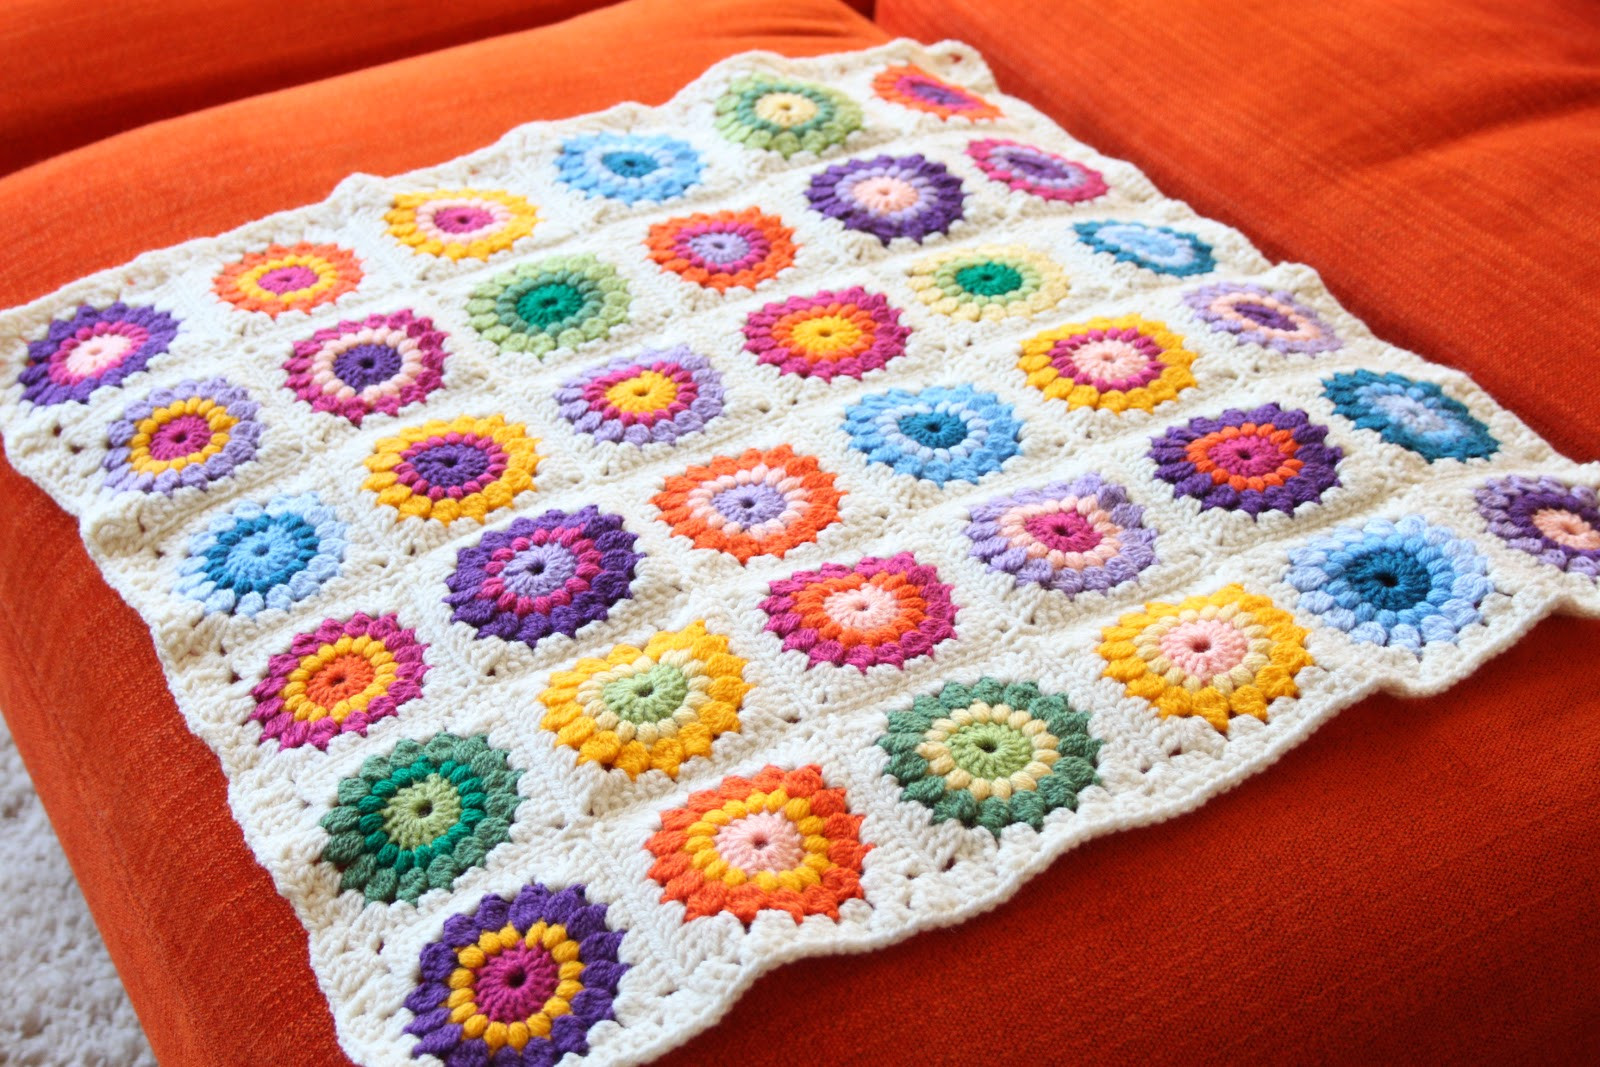 Crochet Granny Square Blanket Patterns Free New Nittybits Sunburst Granny Square Blanket Tutorial Of Amazing 42 Ideas Crochet Granny Square Blanket Patterns Free